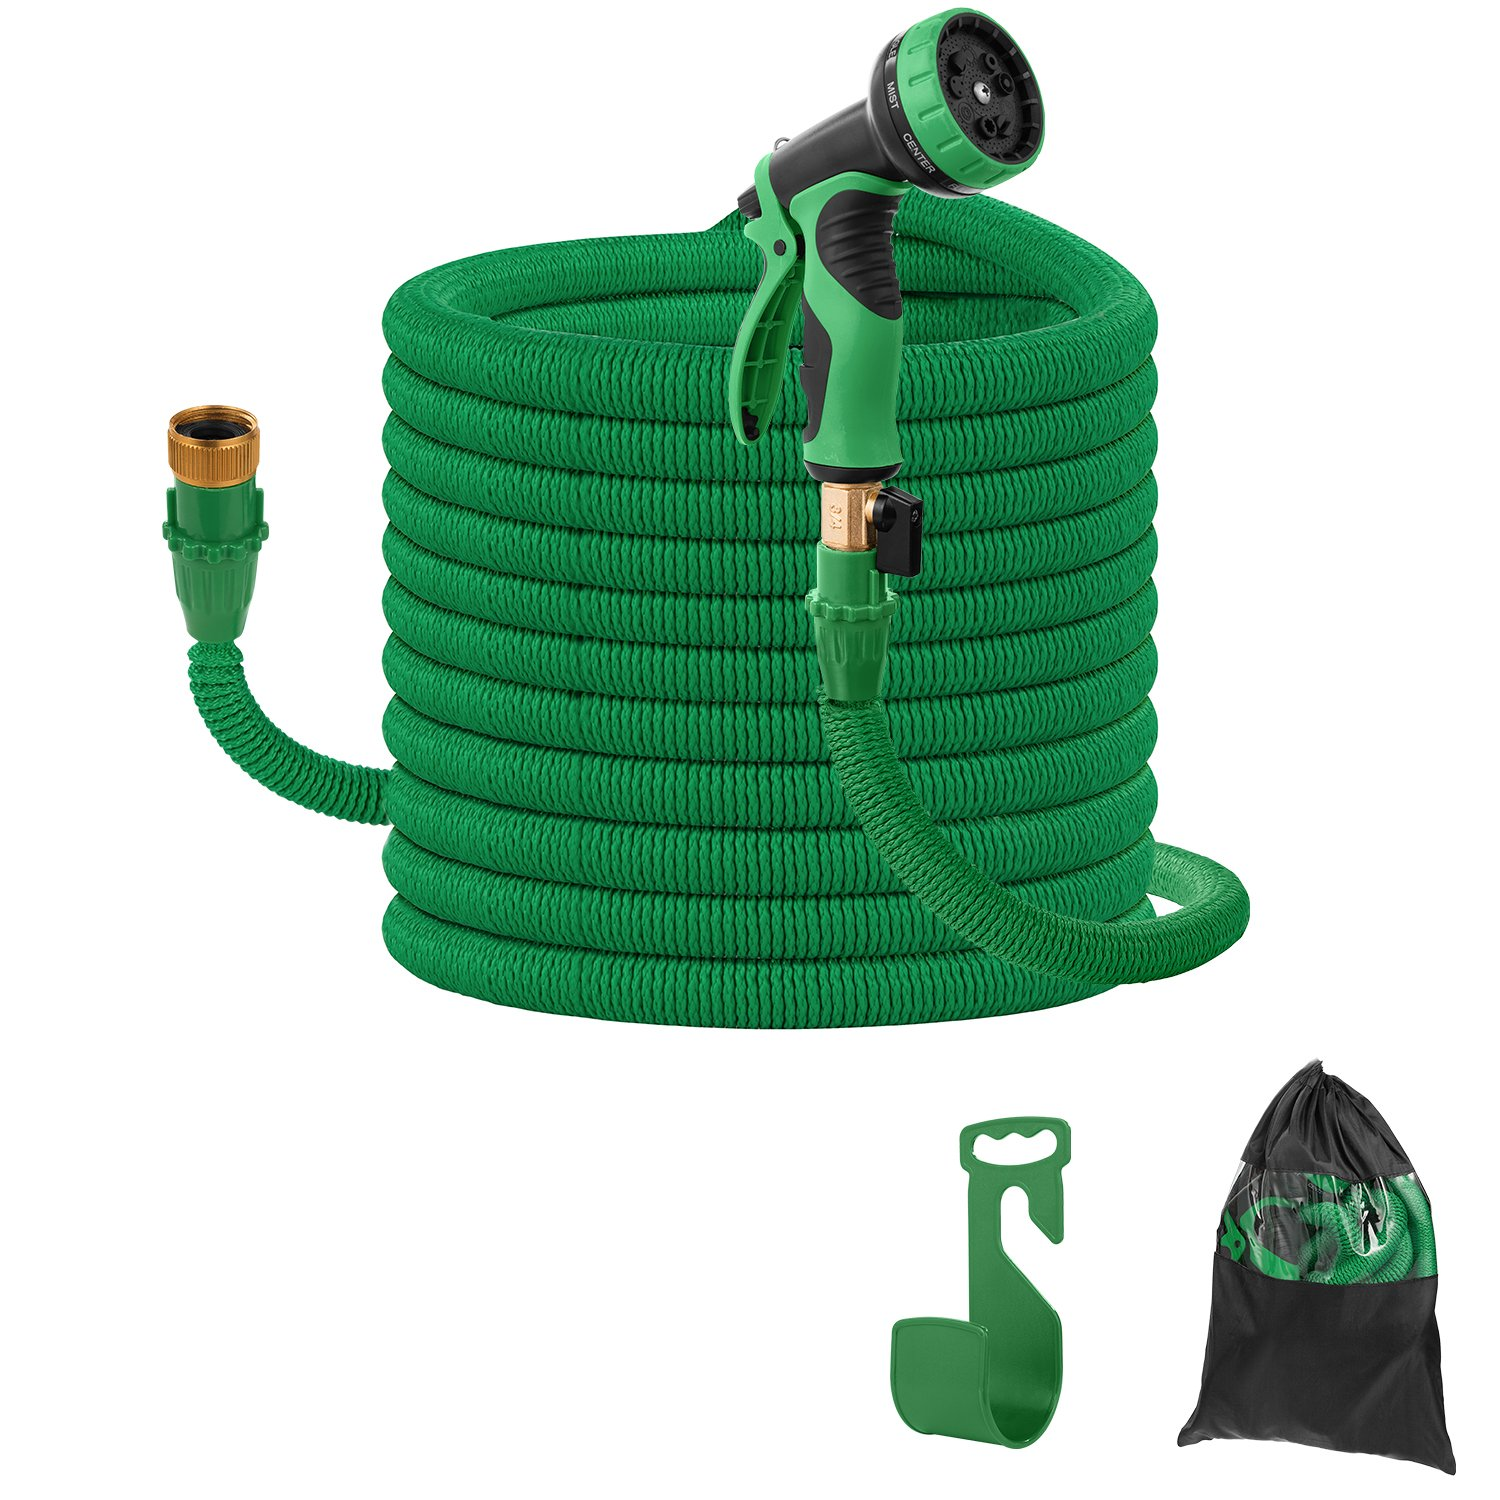 Camande 2018 Upgrade Expandable 50FT Garden Hose,Lightweight Durable Water Hose With Brass Connectors,9 Pattern Spray for Gardens, Aisles, Yards and Houses